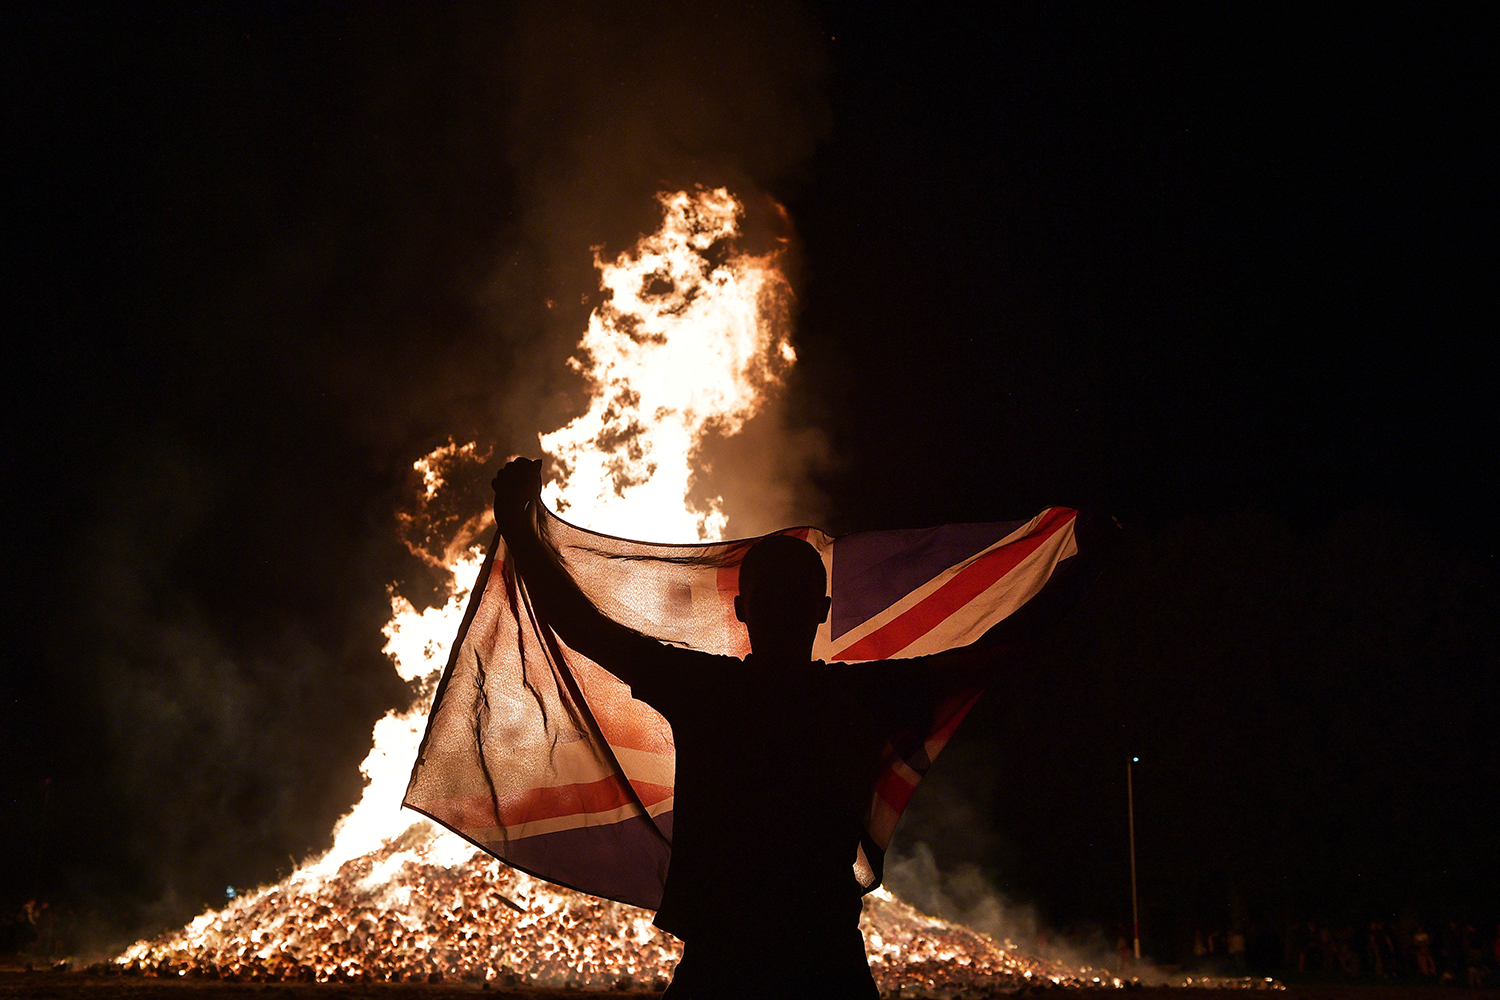 A loyalist waves a Union Jack flag at the Ballycraigy estate's Eleventh Night bonfire in Antrim, Northern Ireland, on July 11. Loyalists traditionally light bonfires at the stroke of midnight to signal the beginning of the Twelfth of July, which marks the victory of the Protestant King William of Orange over the Catholic King James II at the Battle of the Boyne in 1690. Charles McQuillan/Getty Images